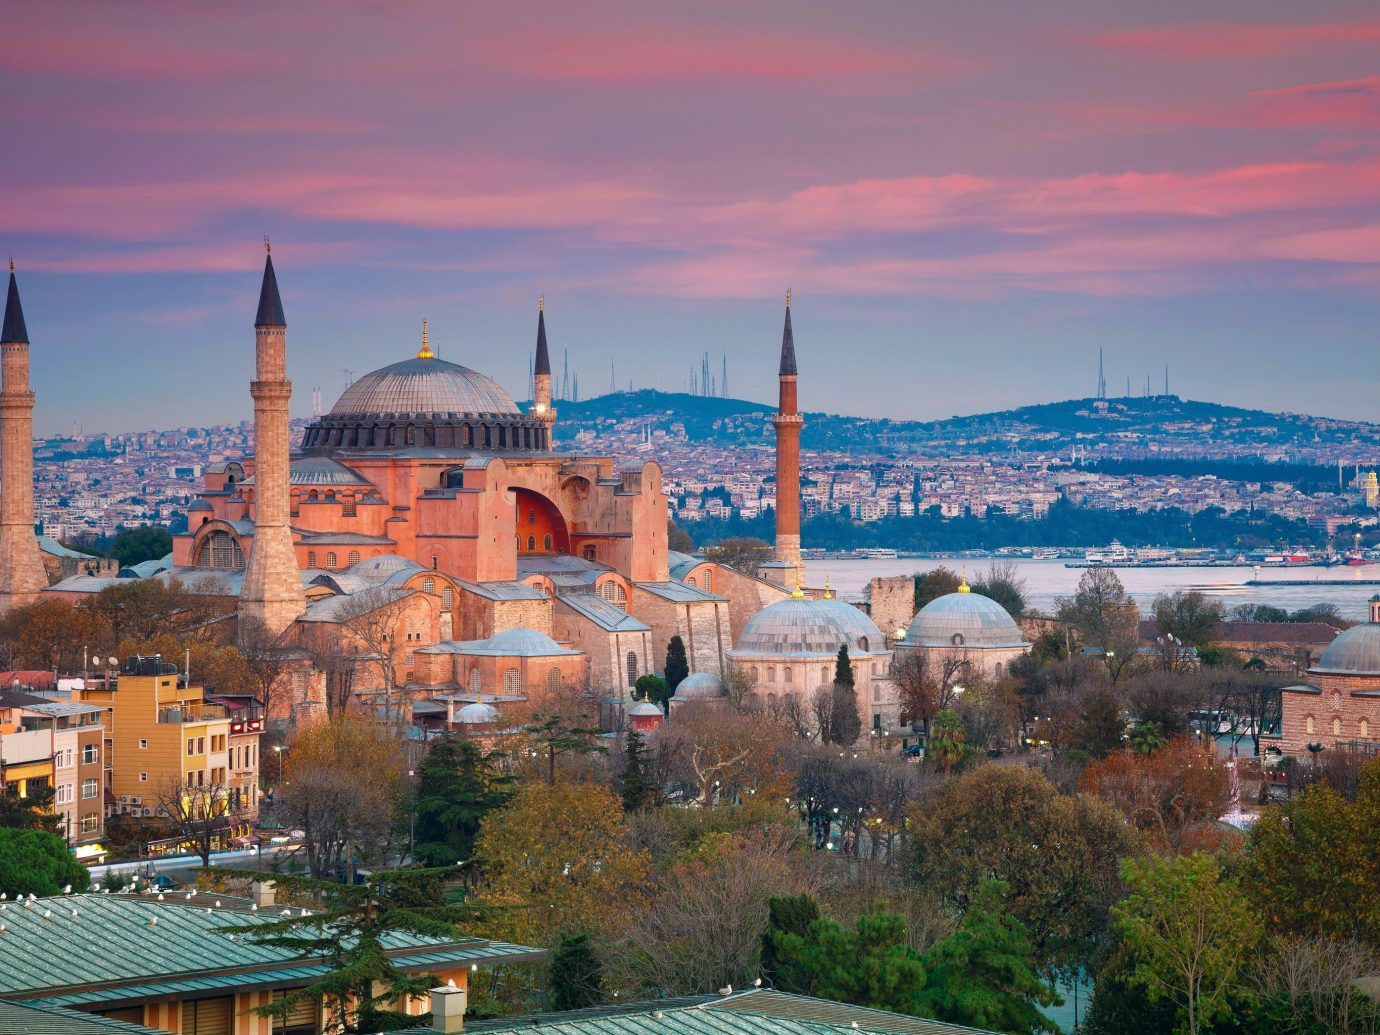 Trip Ideas sky outdoor building landmark Town cityscape City vacation skyline tourism place of worship evening mosque panorama